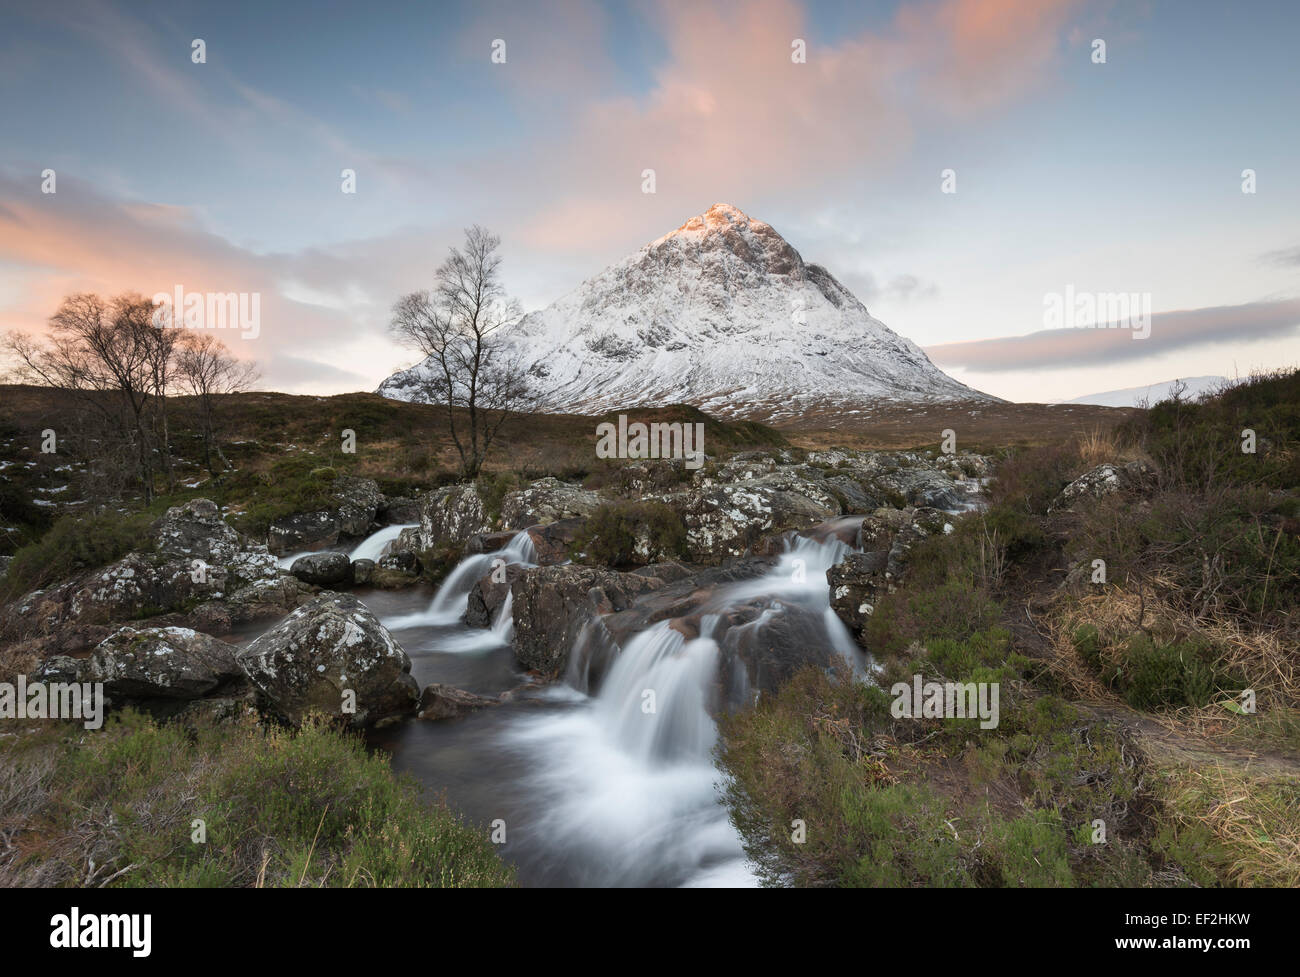 Snow dusted Stob Dearg, Buachaille Etive Mor, and waterfalls on the River Coupall, Glencoe, Scotland - Stock Image